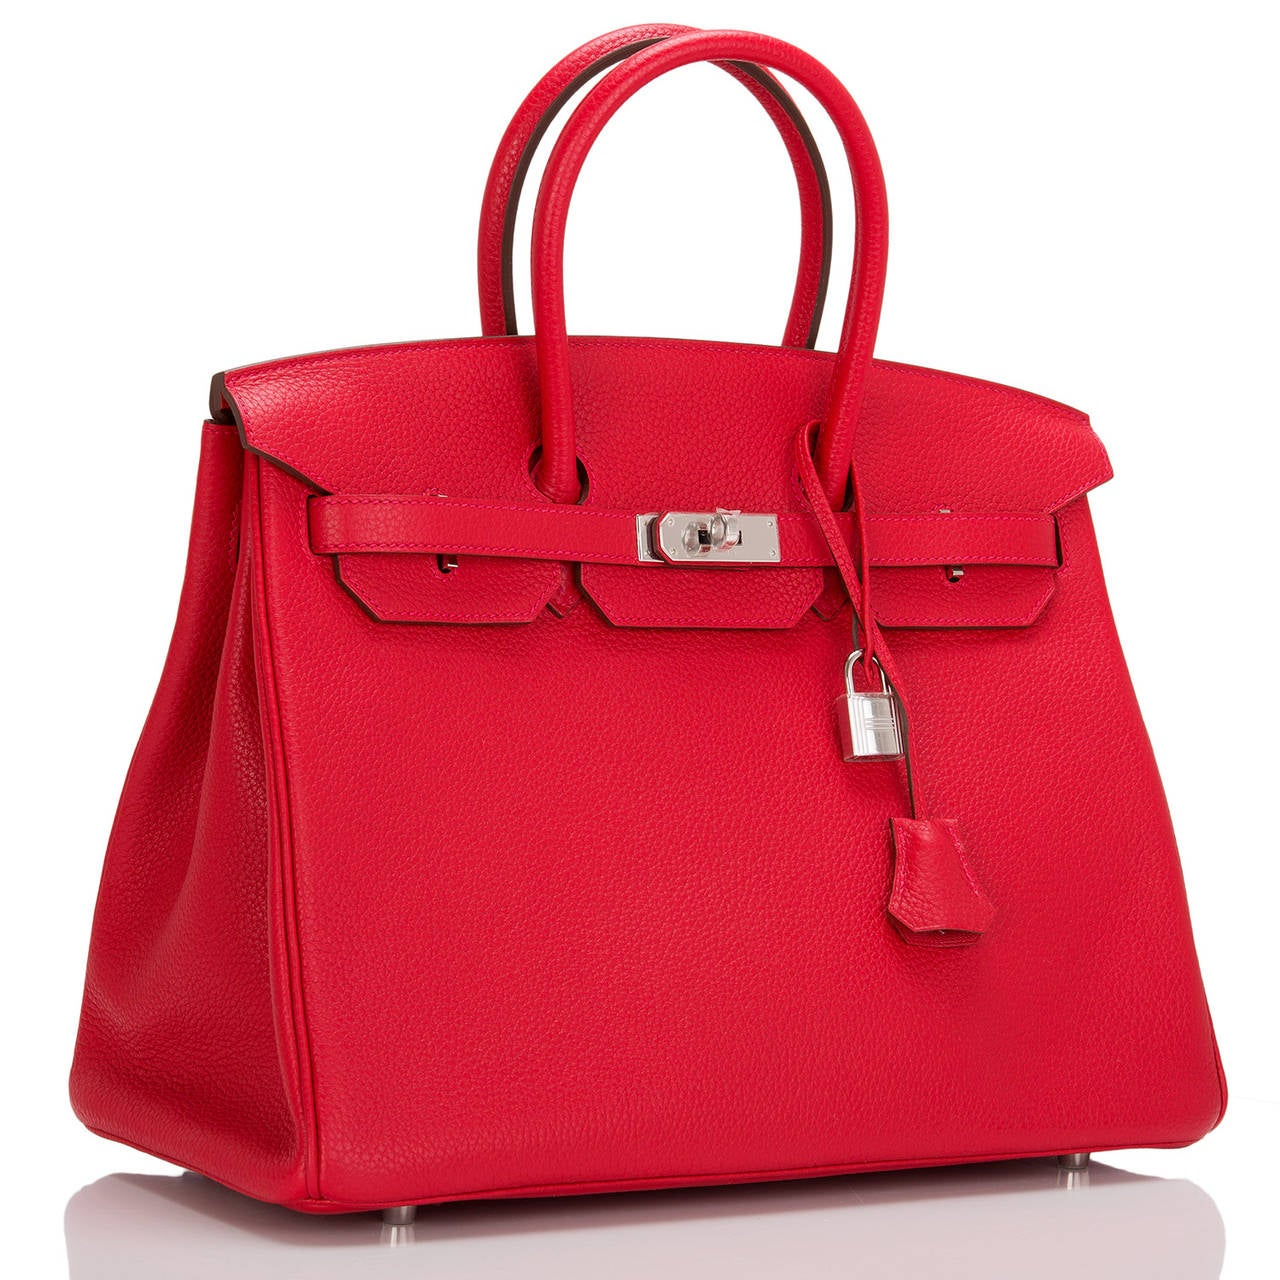 Hermes Rouge Casaque Birkin 35cm in clemence leather with palladium hardware.  This Birkin features tonal stitching, front toggle closure, clochette with lock and two keys, and double rolled handles. Interior is lined in Rouge Casaque chevre with